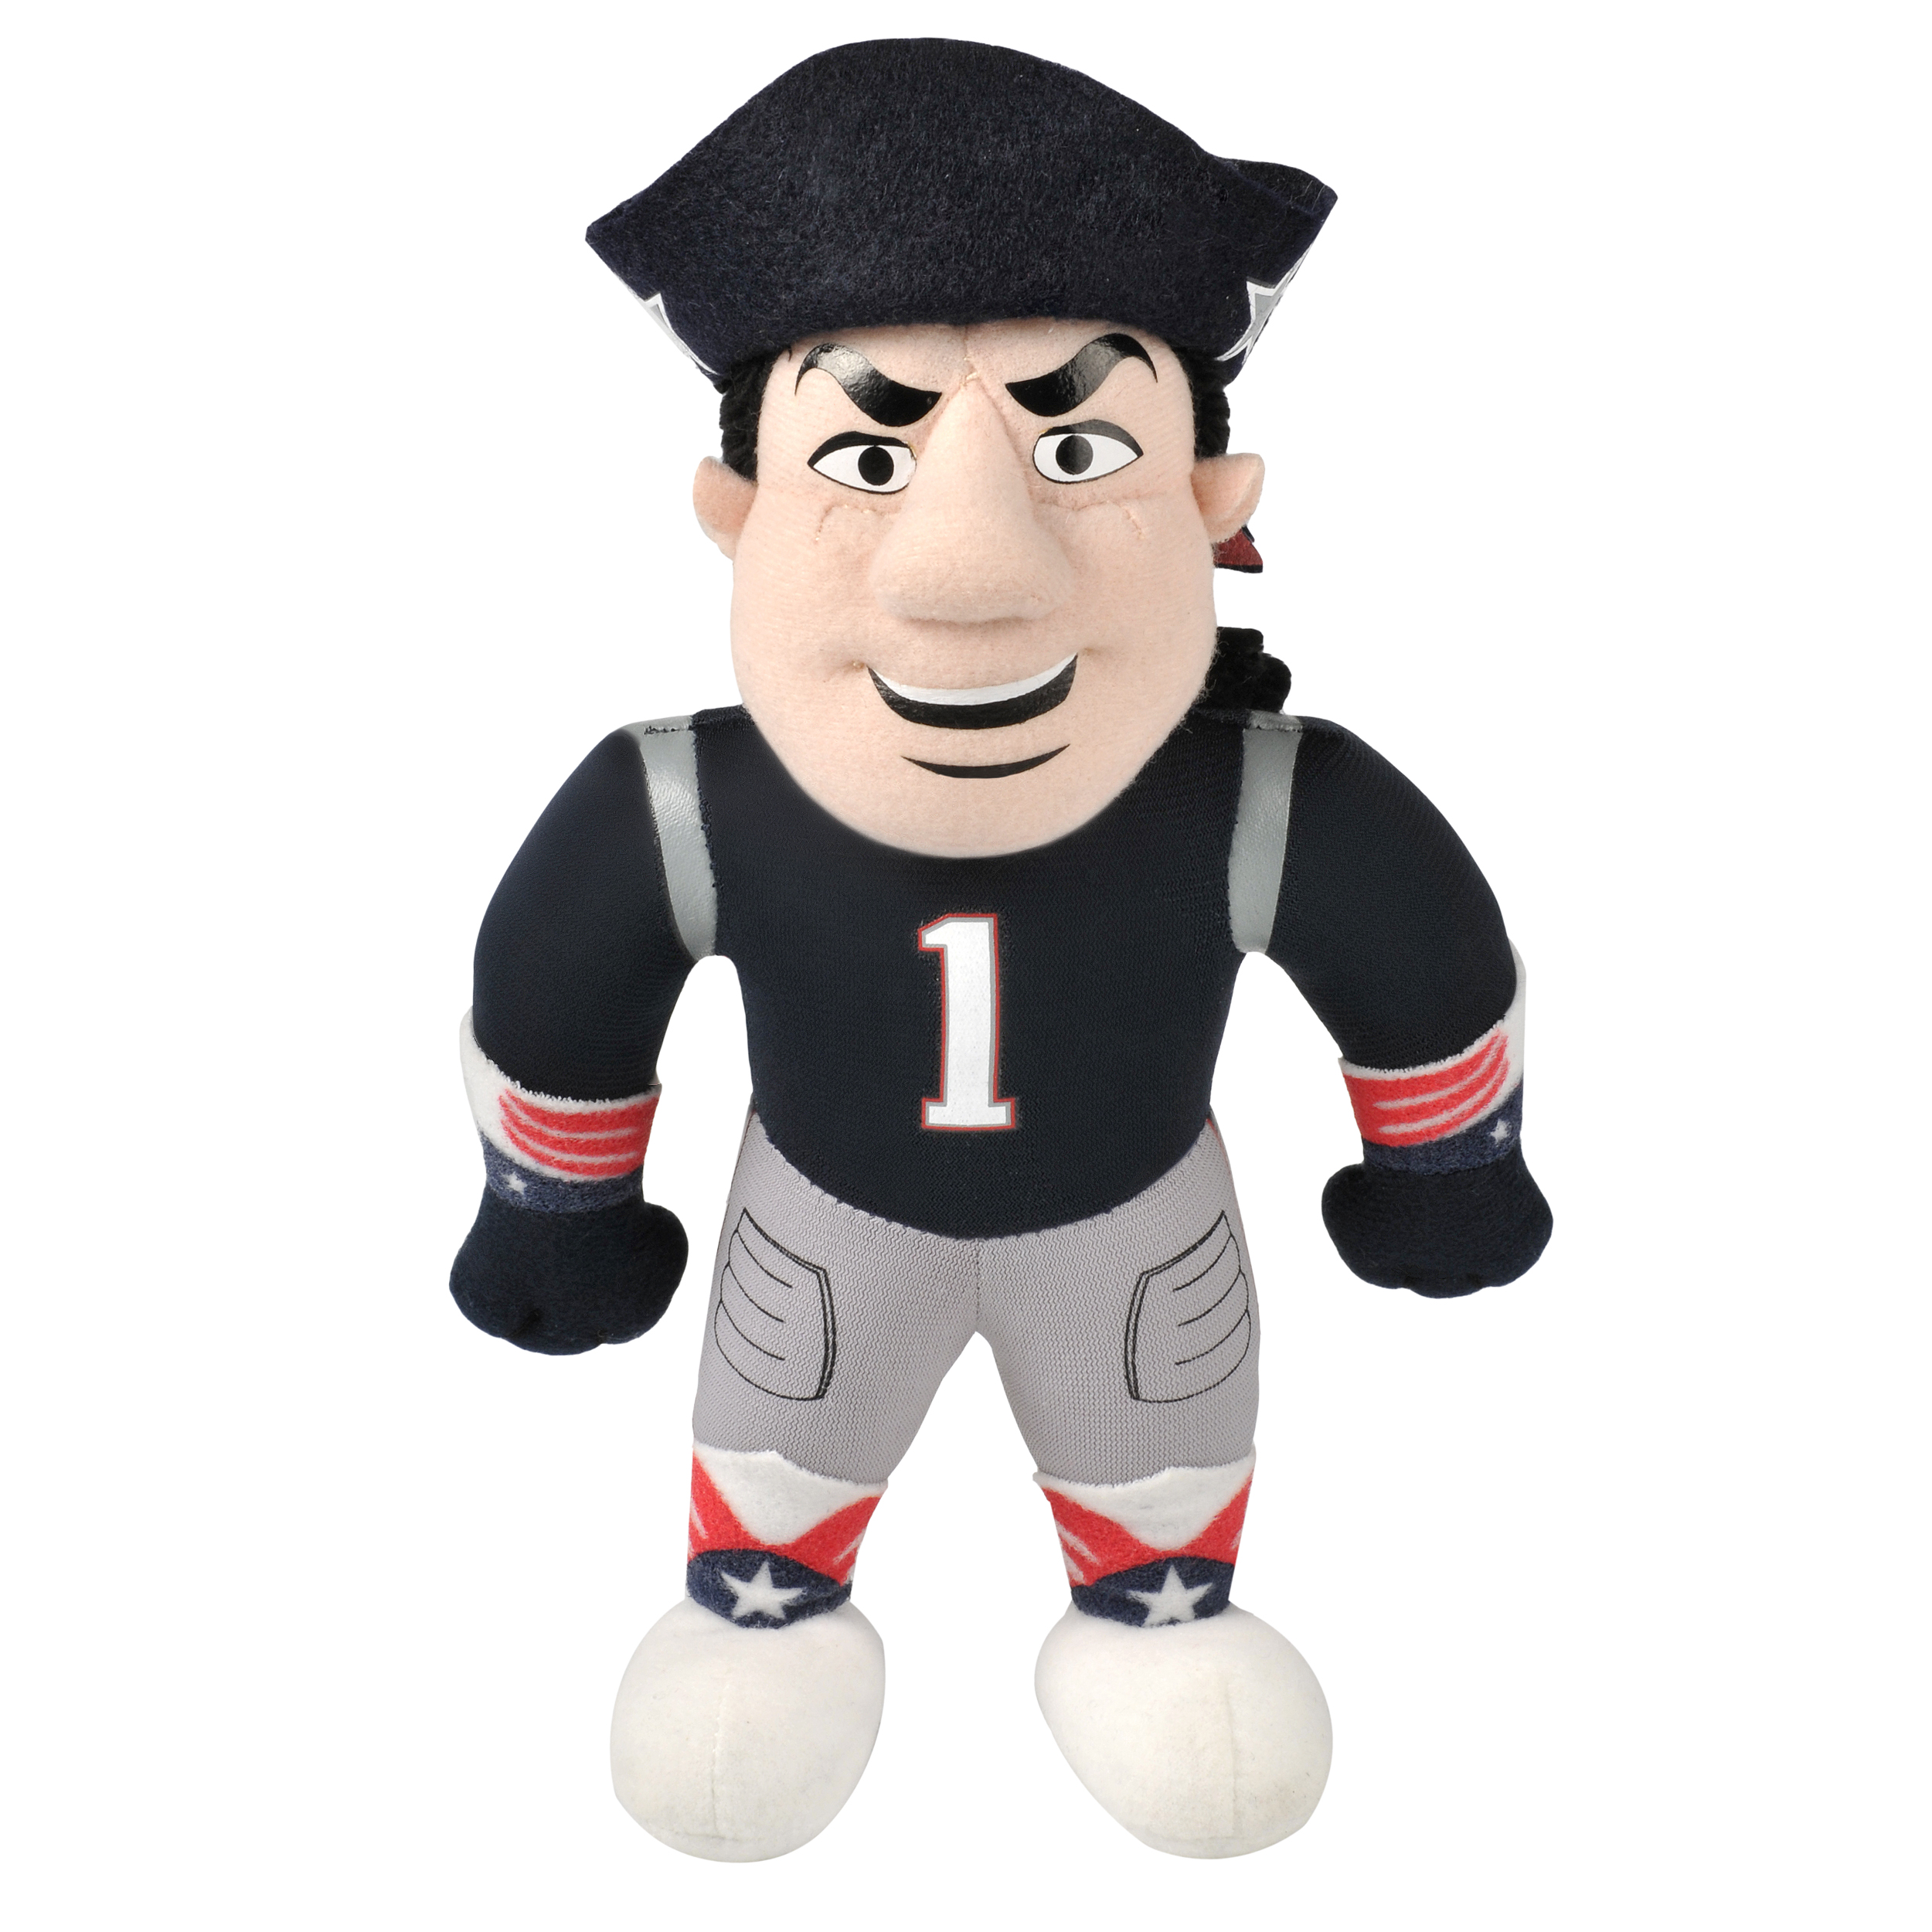 New England Patriots Official NFL Plush Team Mascot by Forever Collectibles 102486